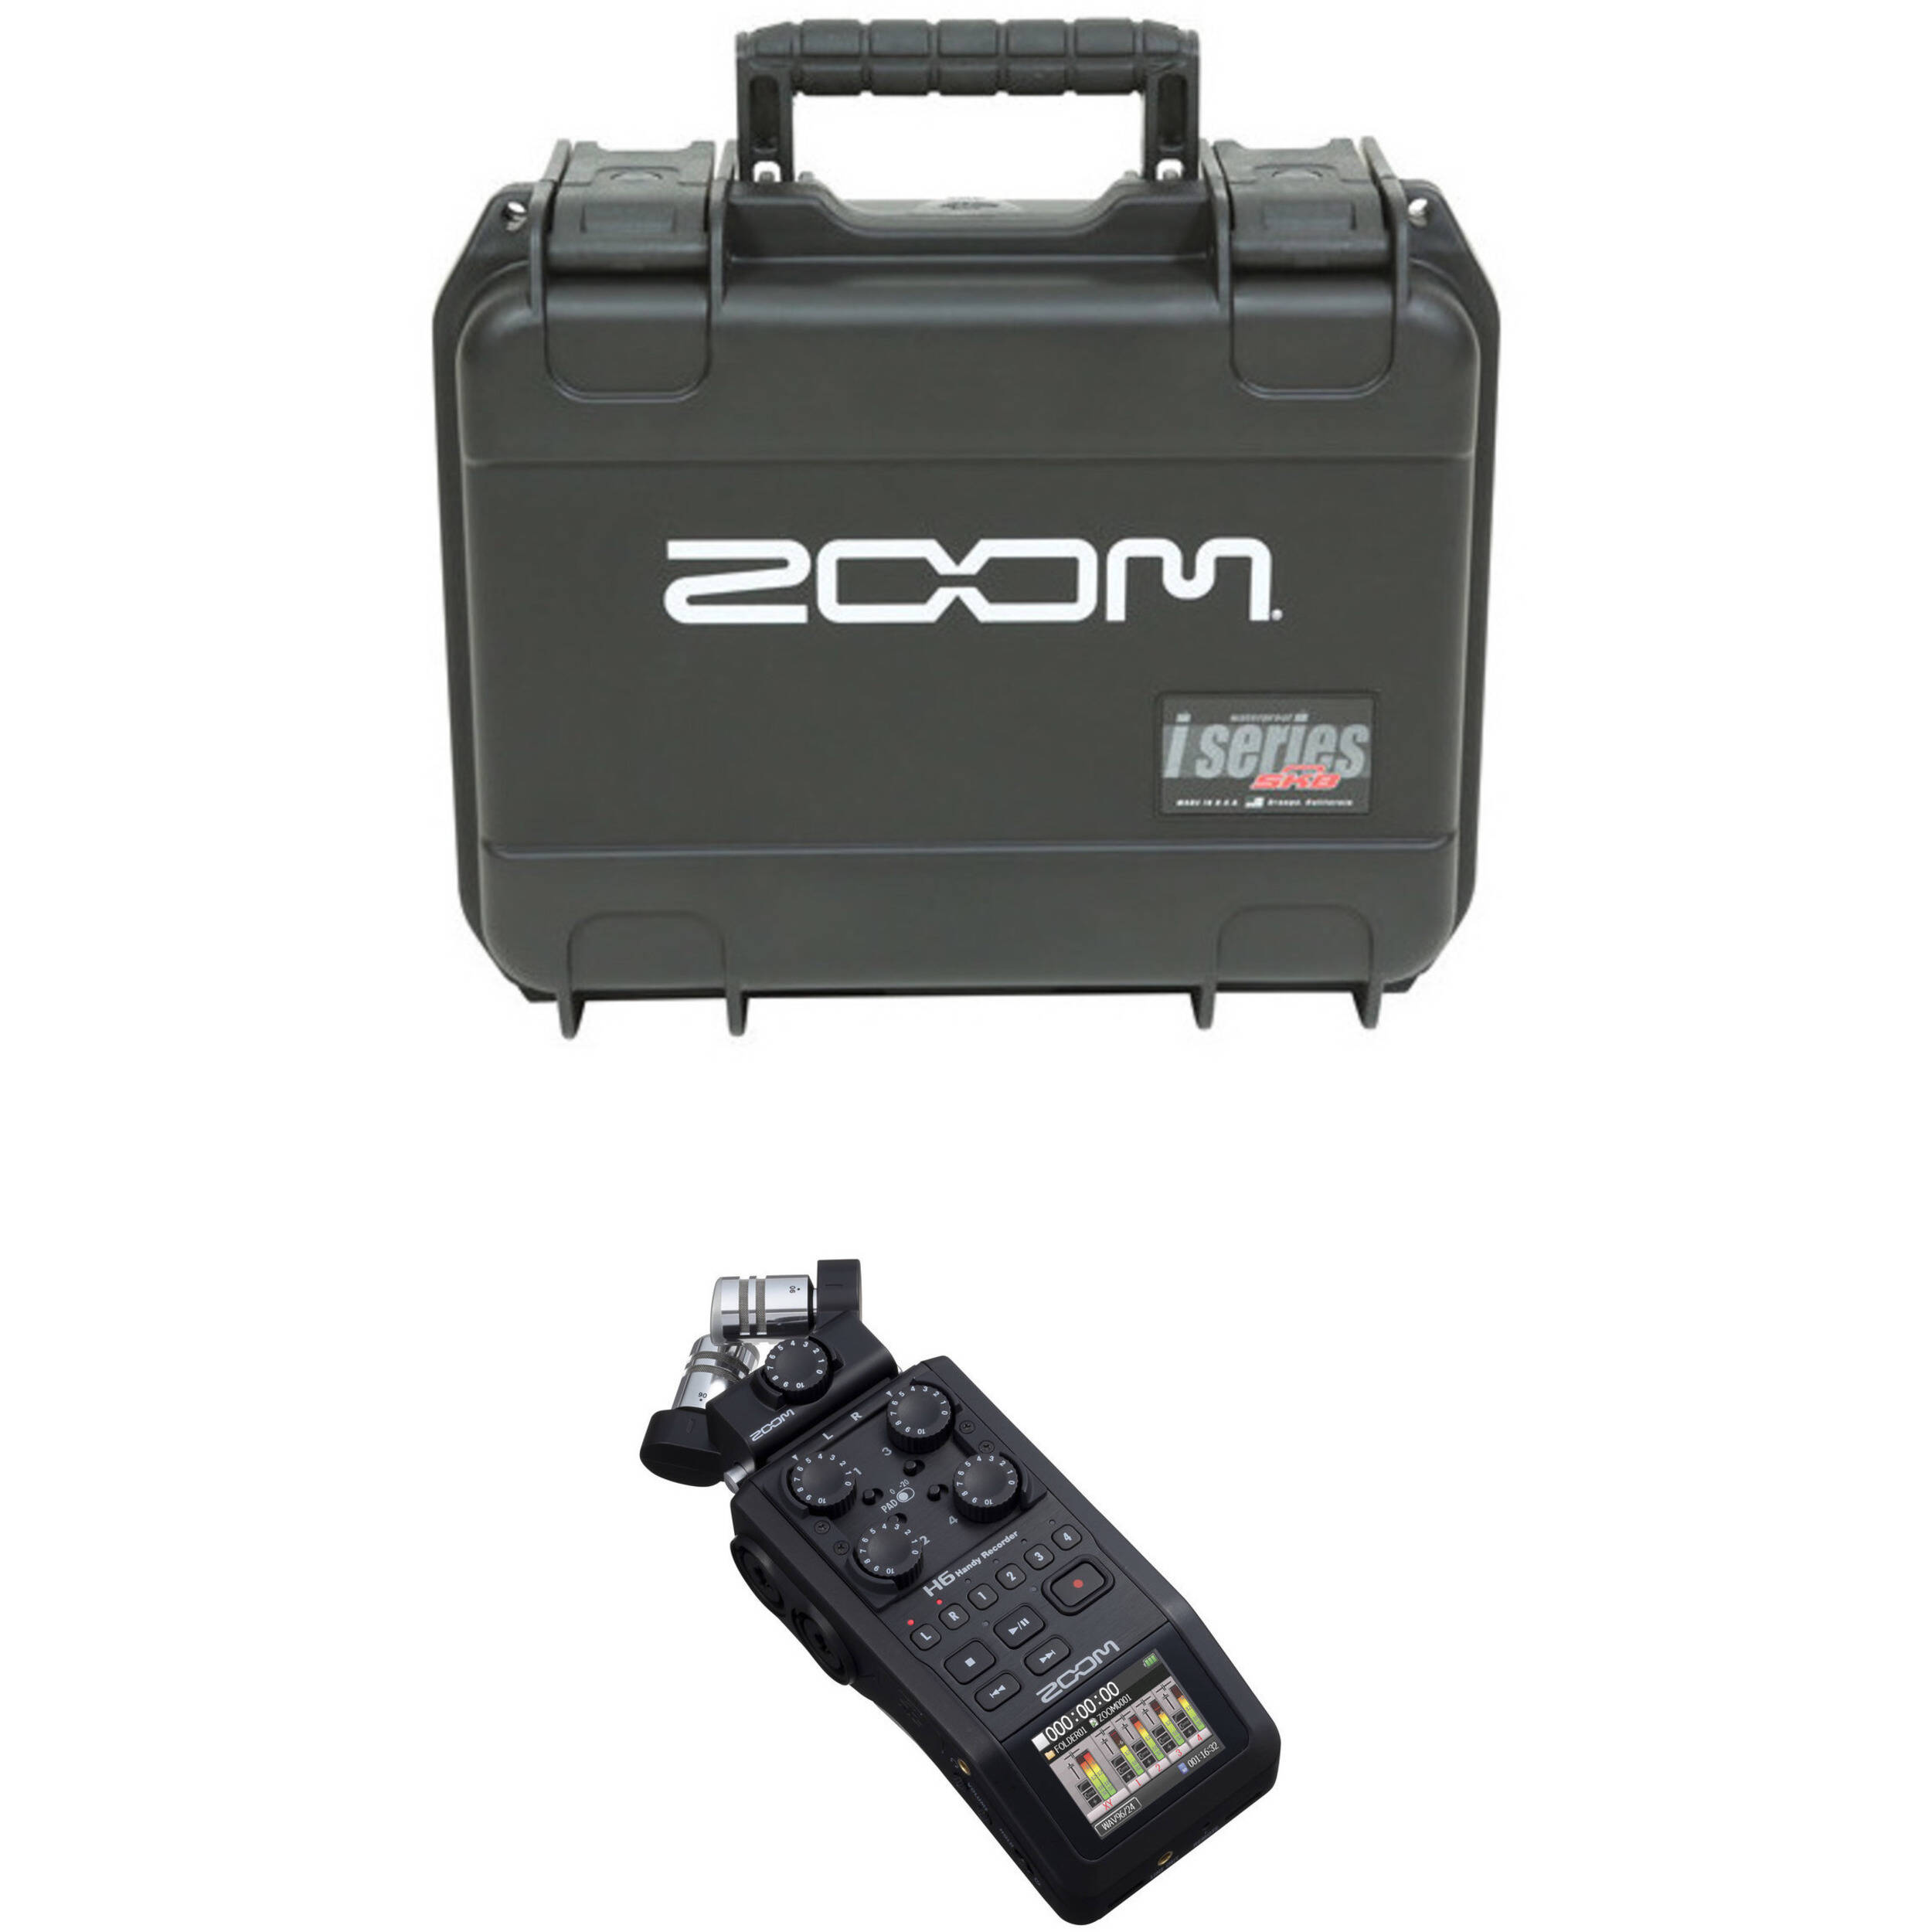 Zoom H6 Recorder Zoom H6 Handy Recorder With Interchangeable Microphone System And Waterproof Case For H6 Recorder And Mic Modules Kit